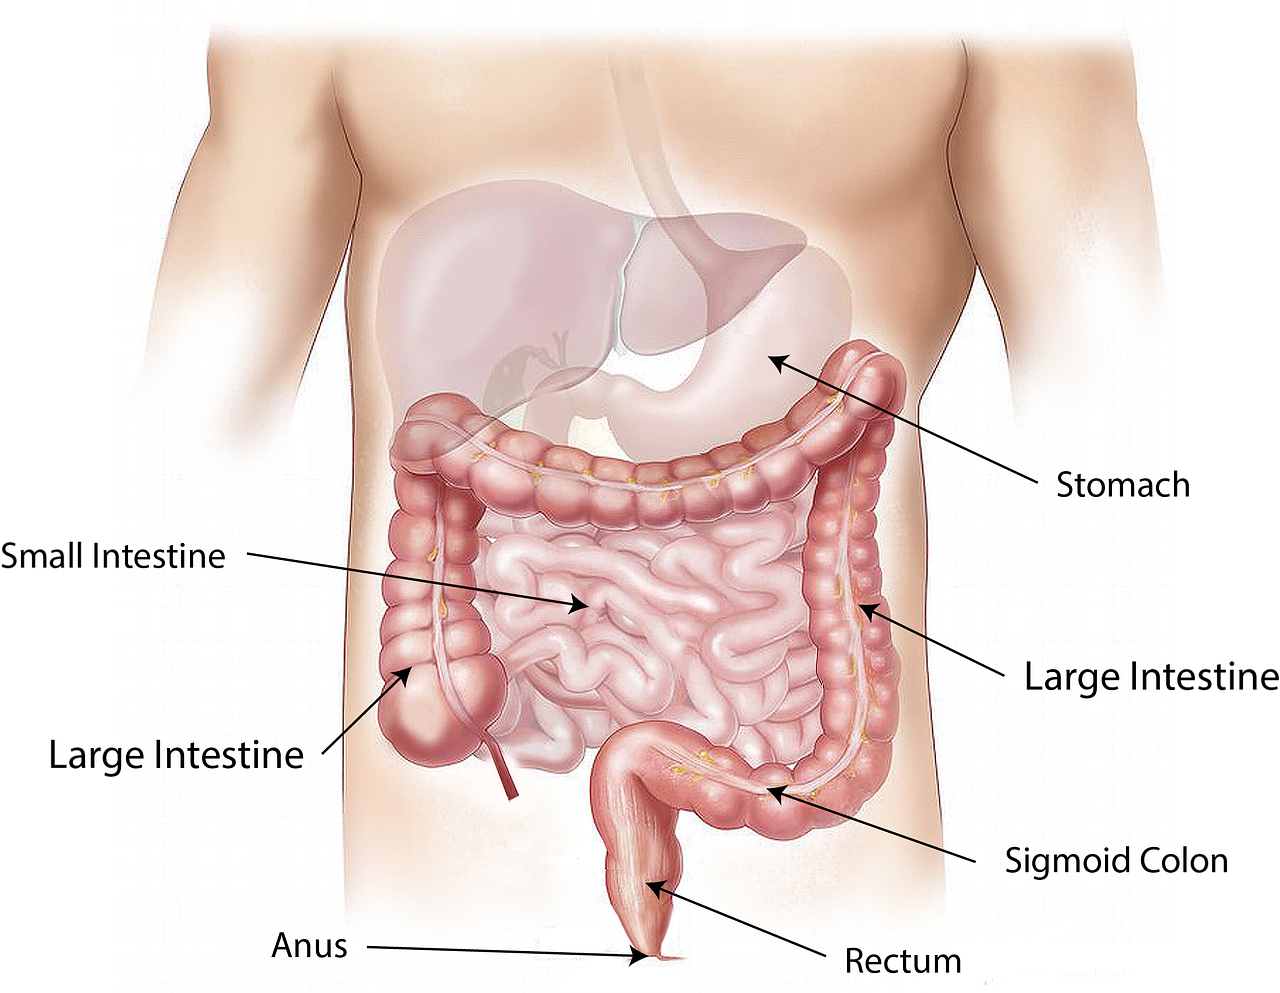 Anal sex and colon cancer